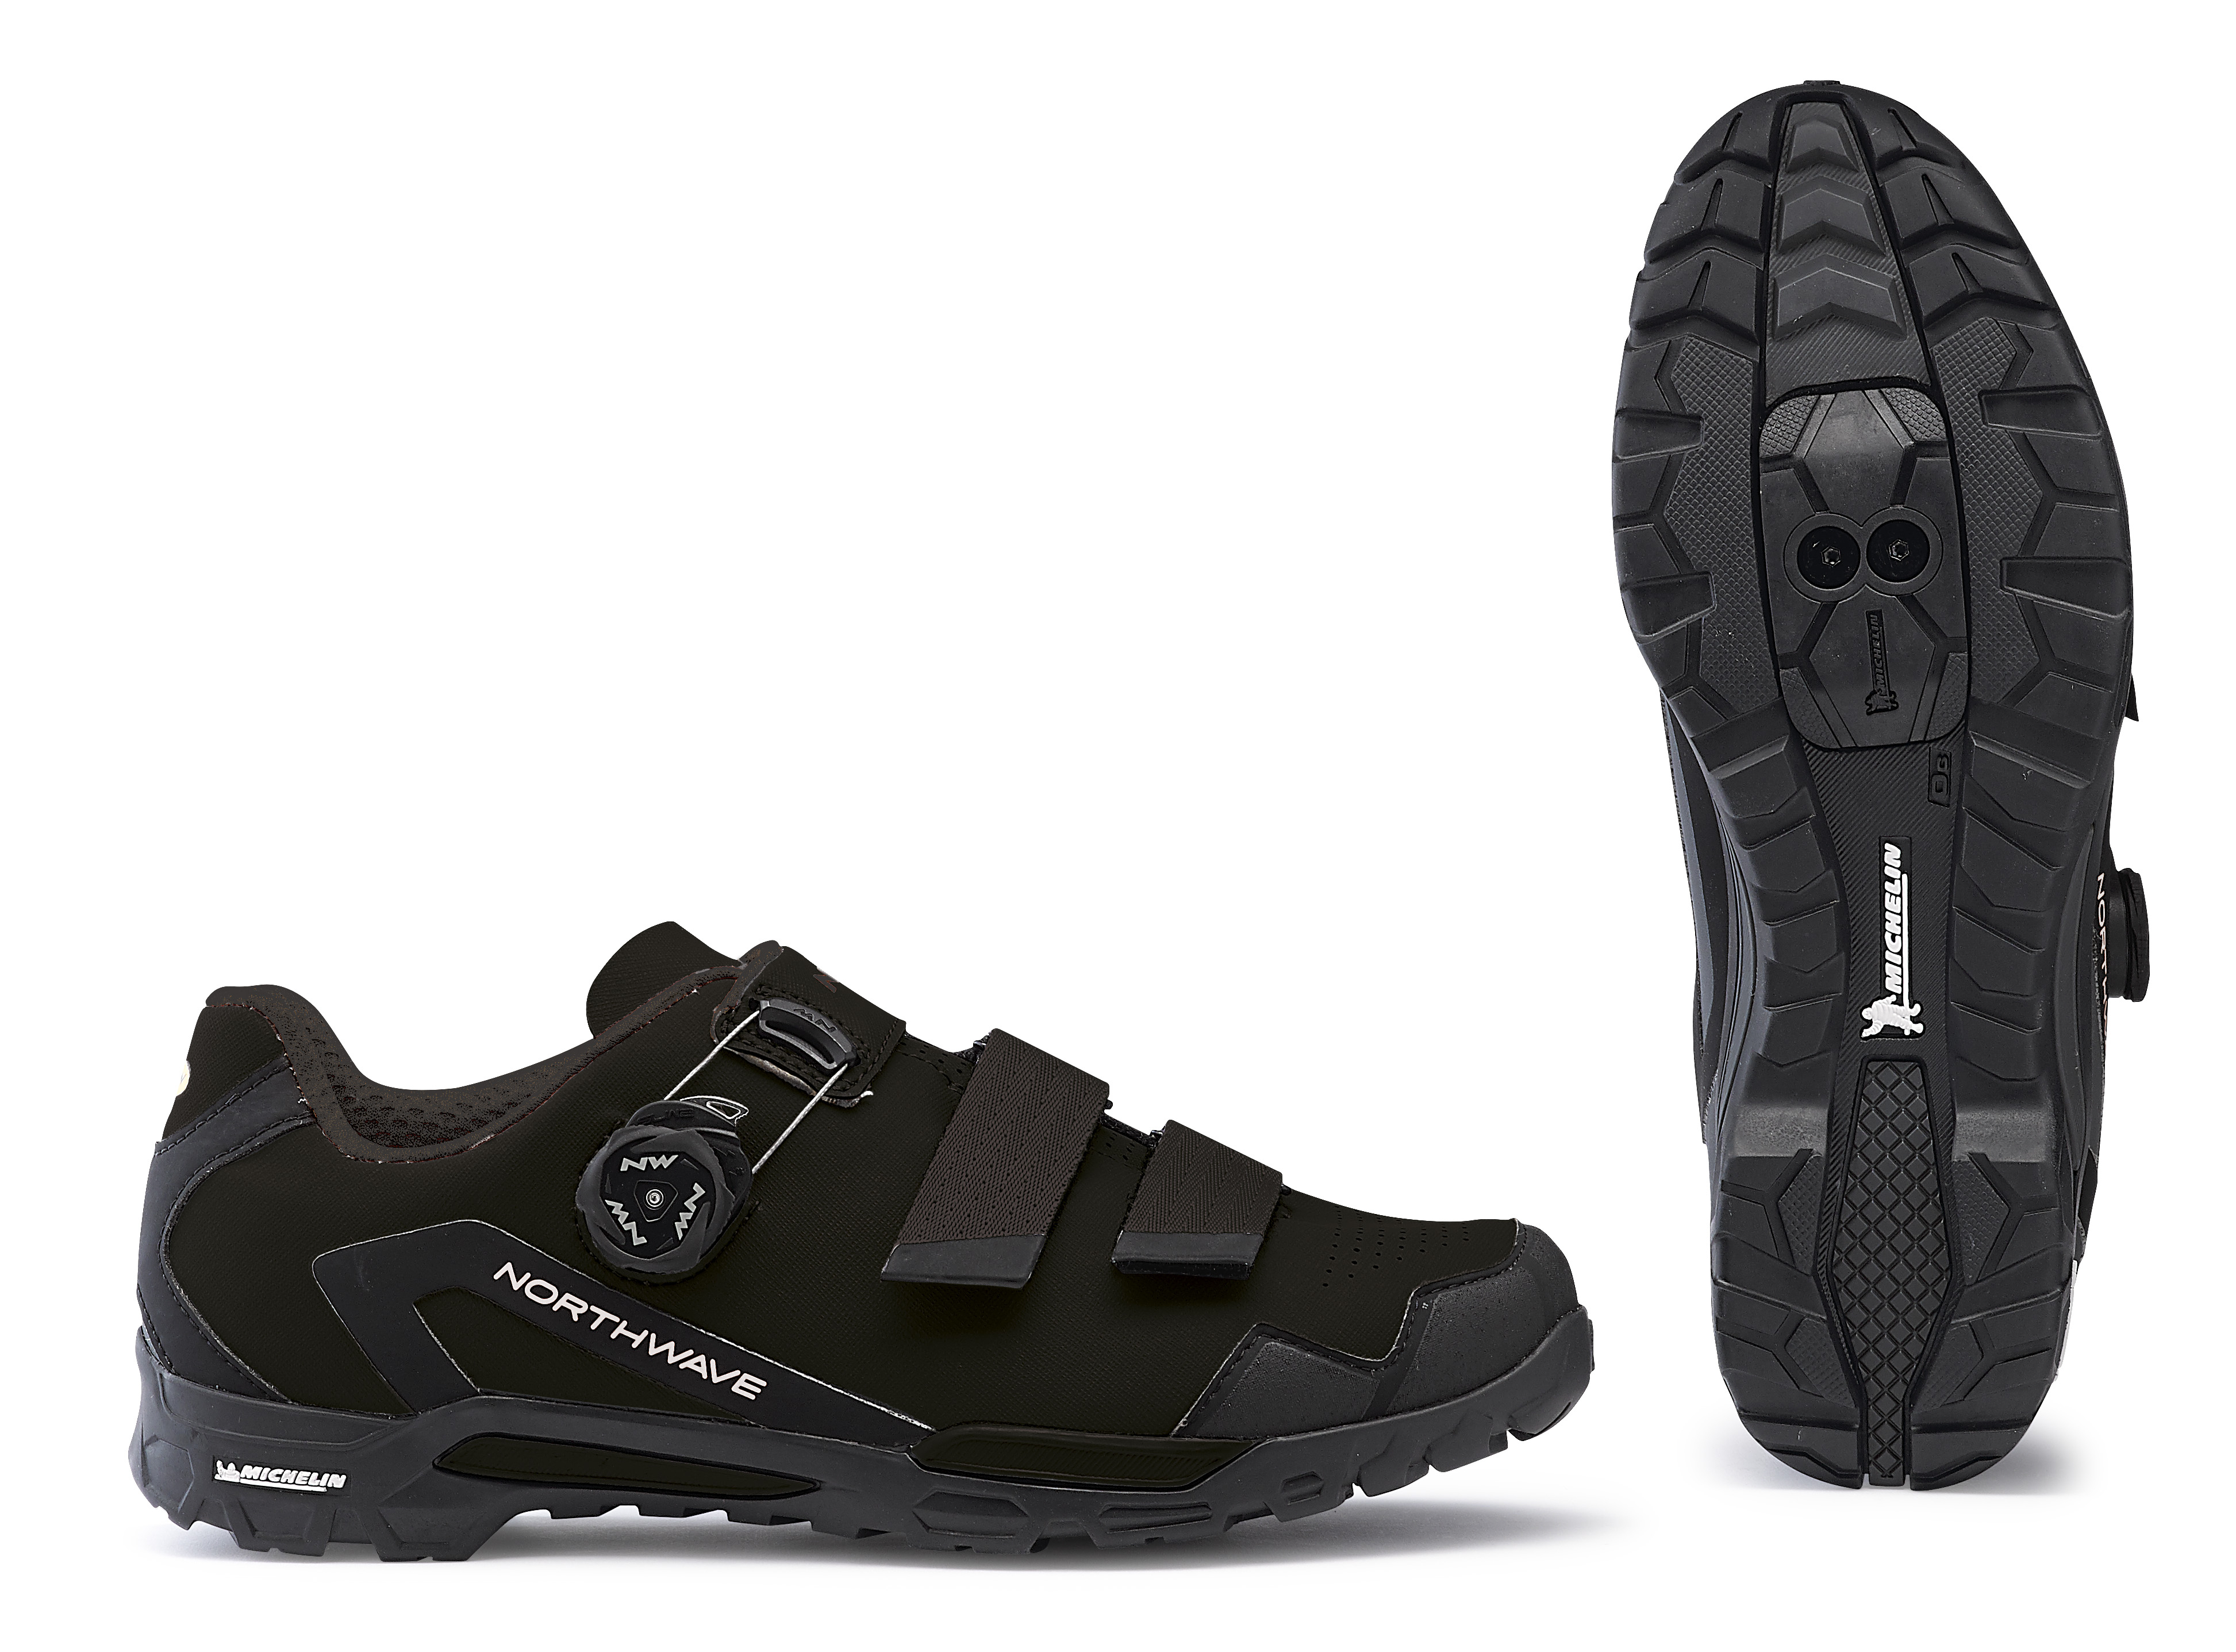 Best price Northwave Bike shoes Male Outcross 2 Plus